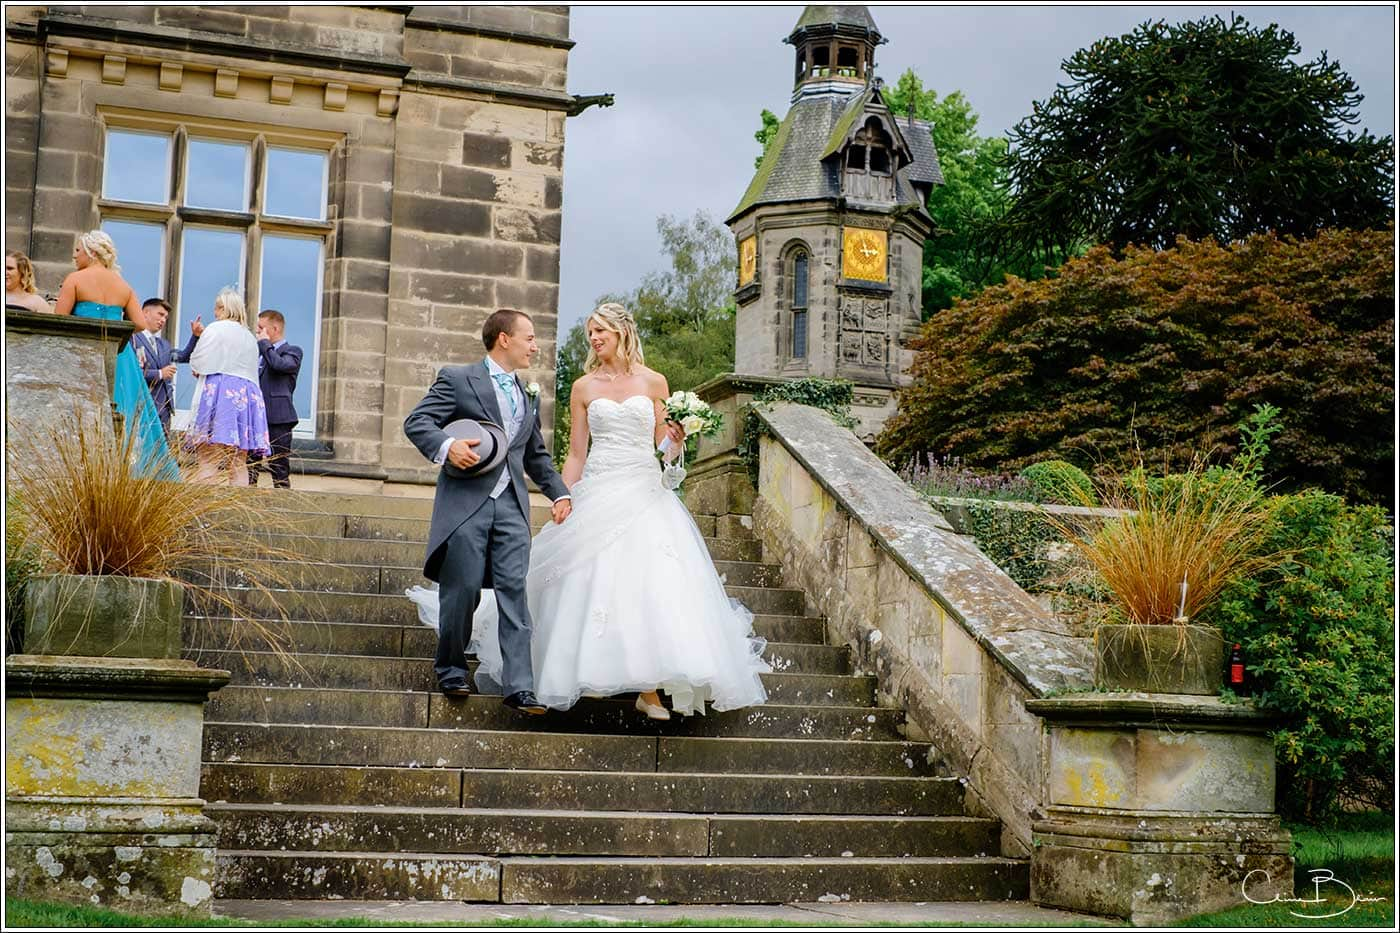 Bride and groom going for a walk in the grounds of Hampton Manor-by Hampton manor wedding photographer Clive Blair Photography